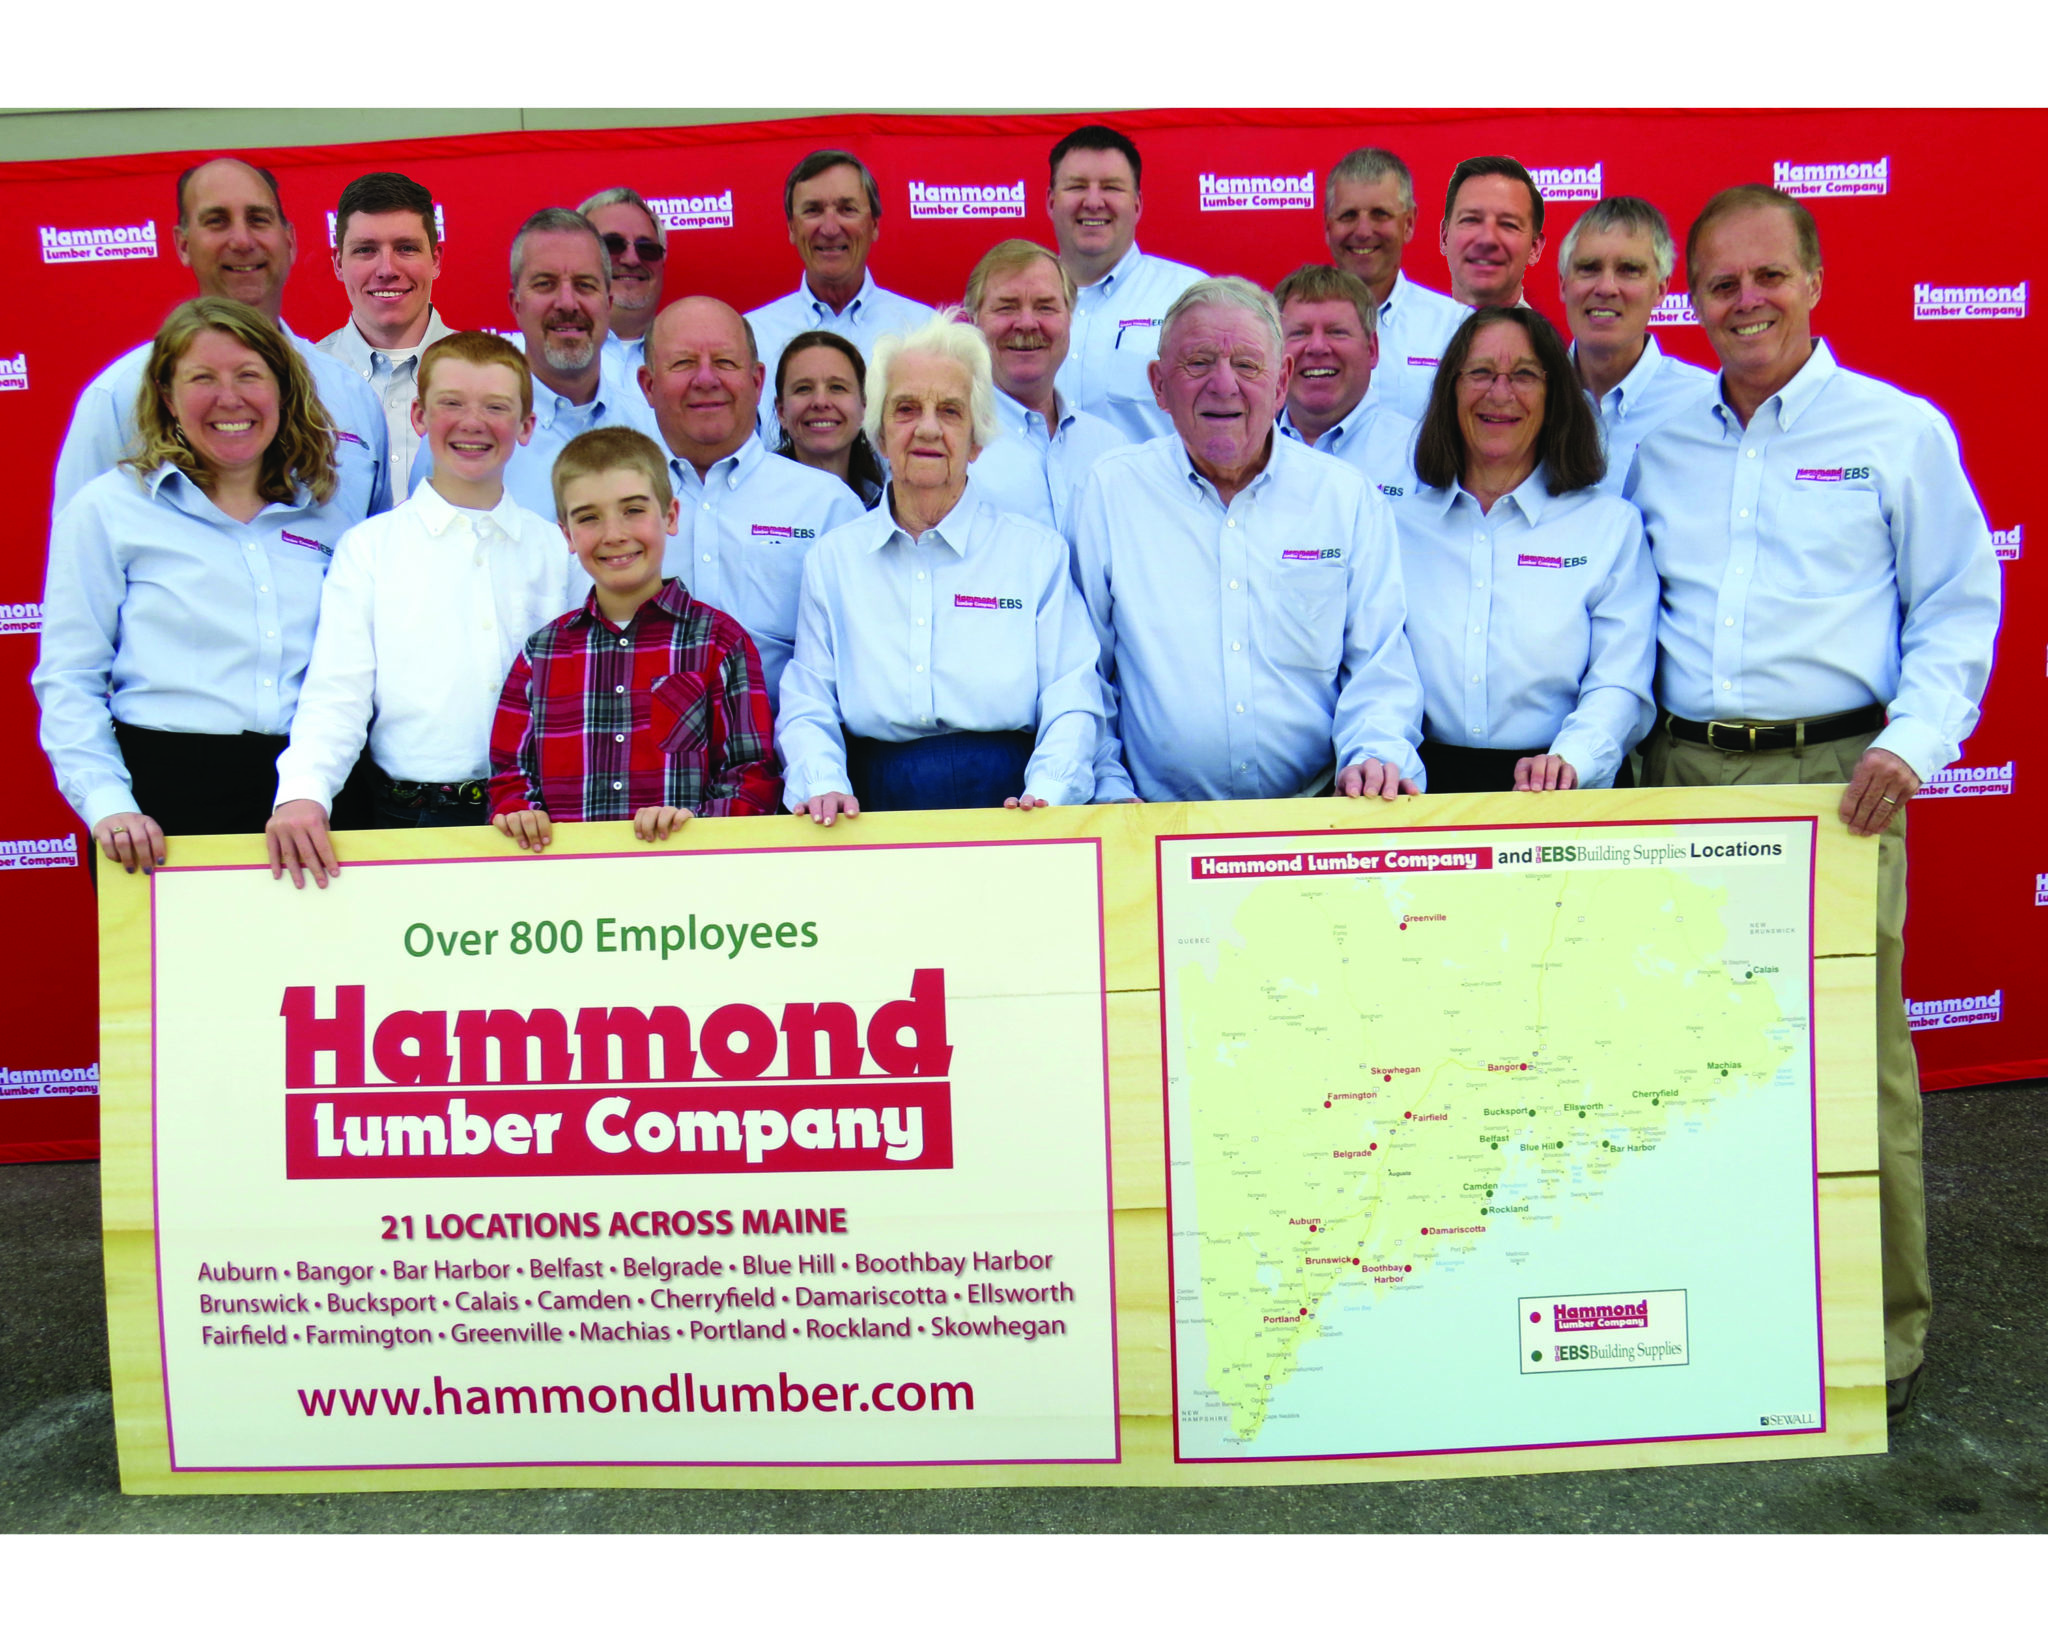 The Hammond family with Hammond Lumber staff and former Shareholders of EBS.